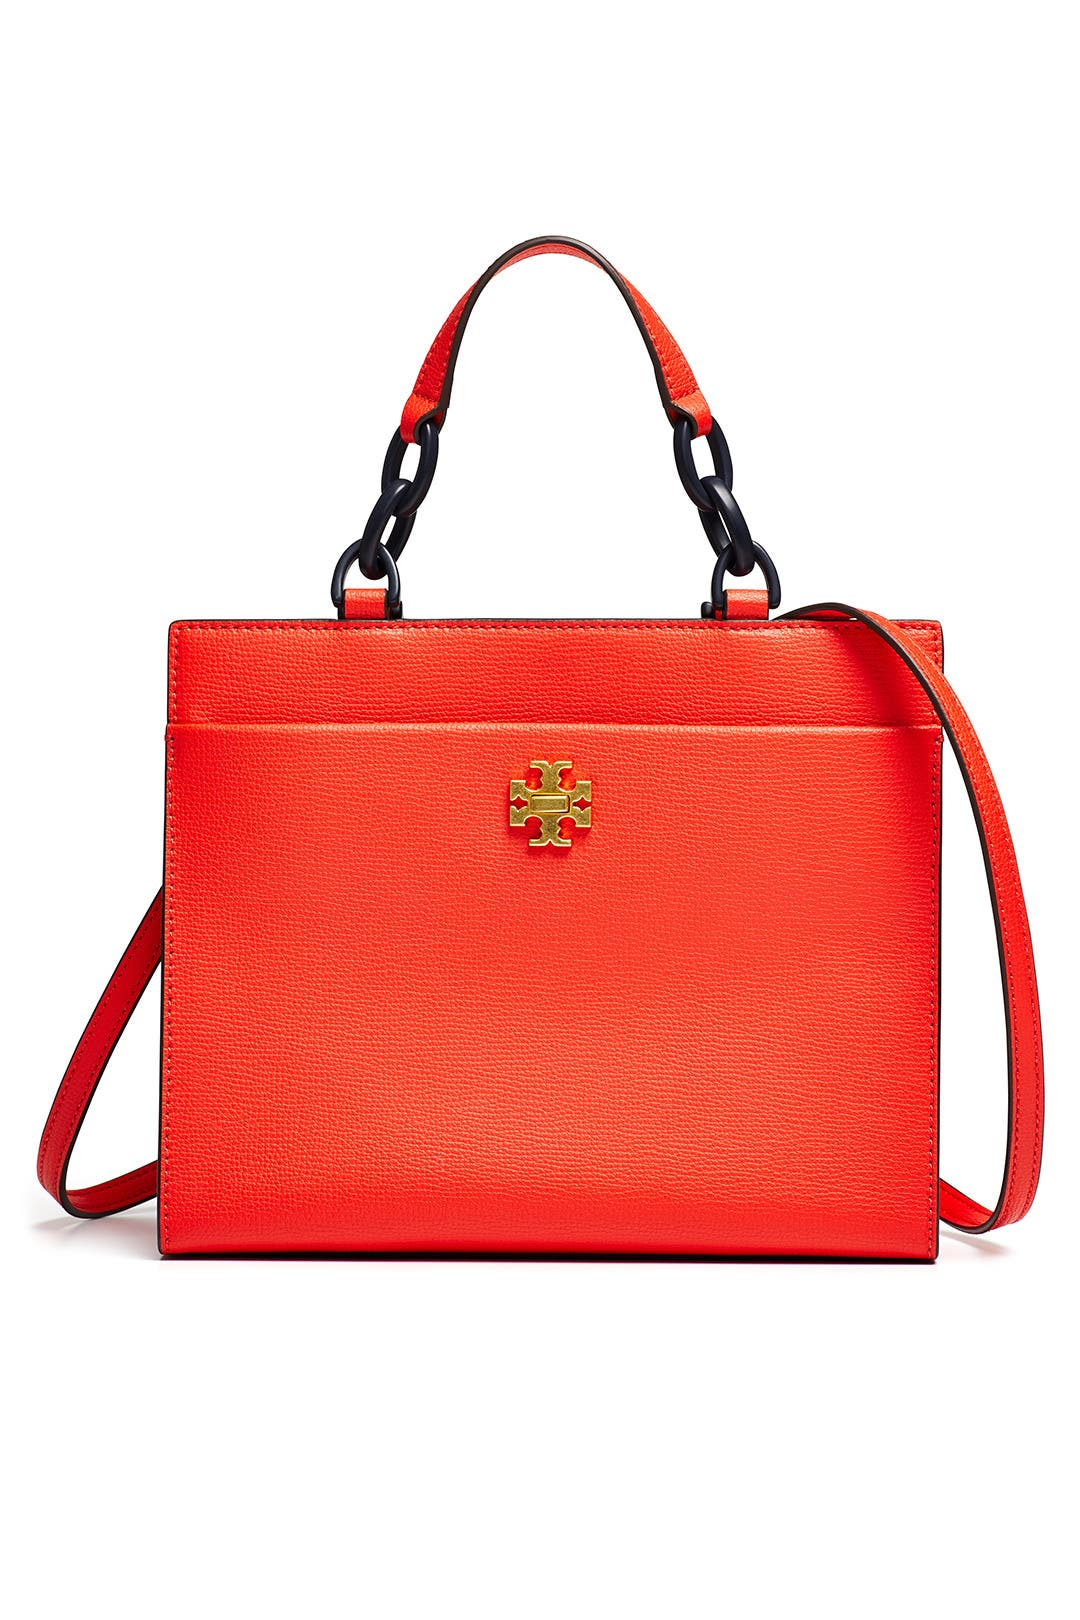 Tory Burch Red Kira shoulder bag x3jCzhU